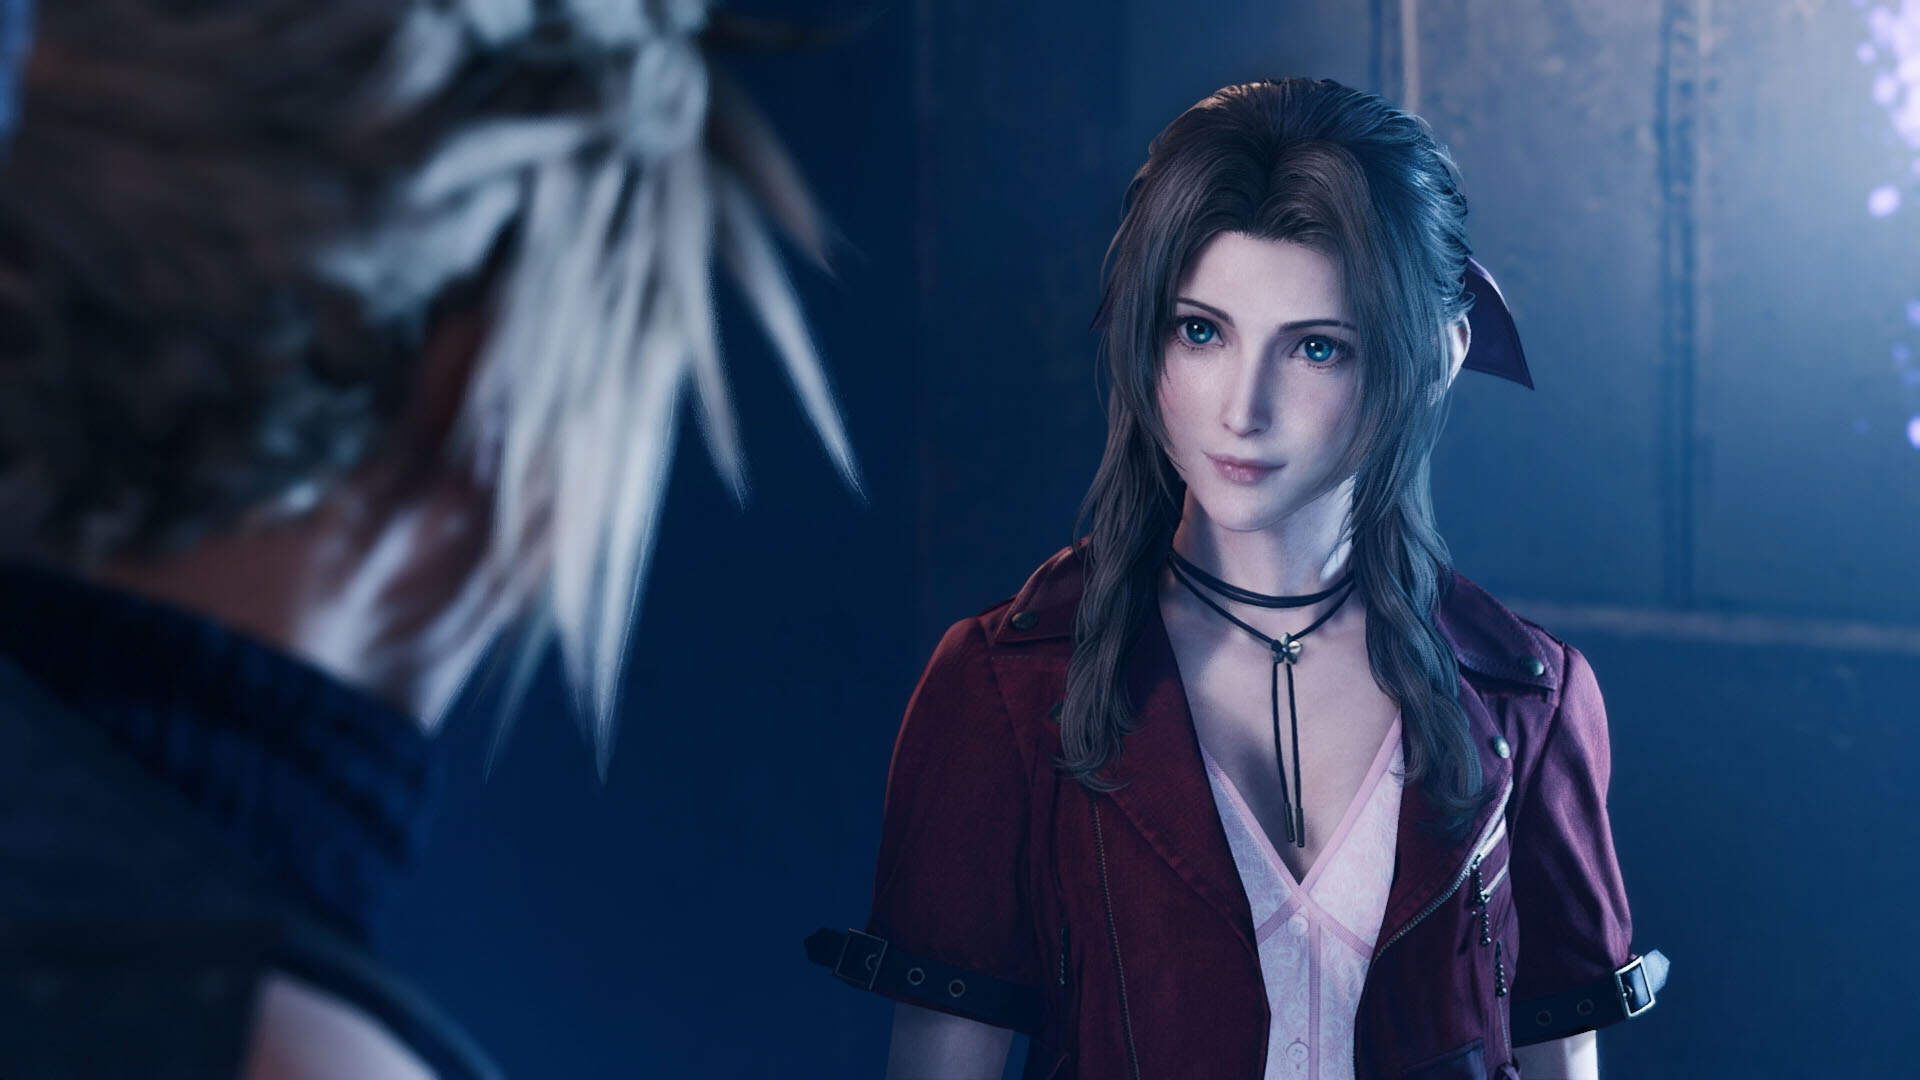 A Final Fantasy 7 Remake Fan Theory About Aerith Actually Makes a Lot of Sense